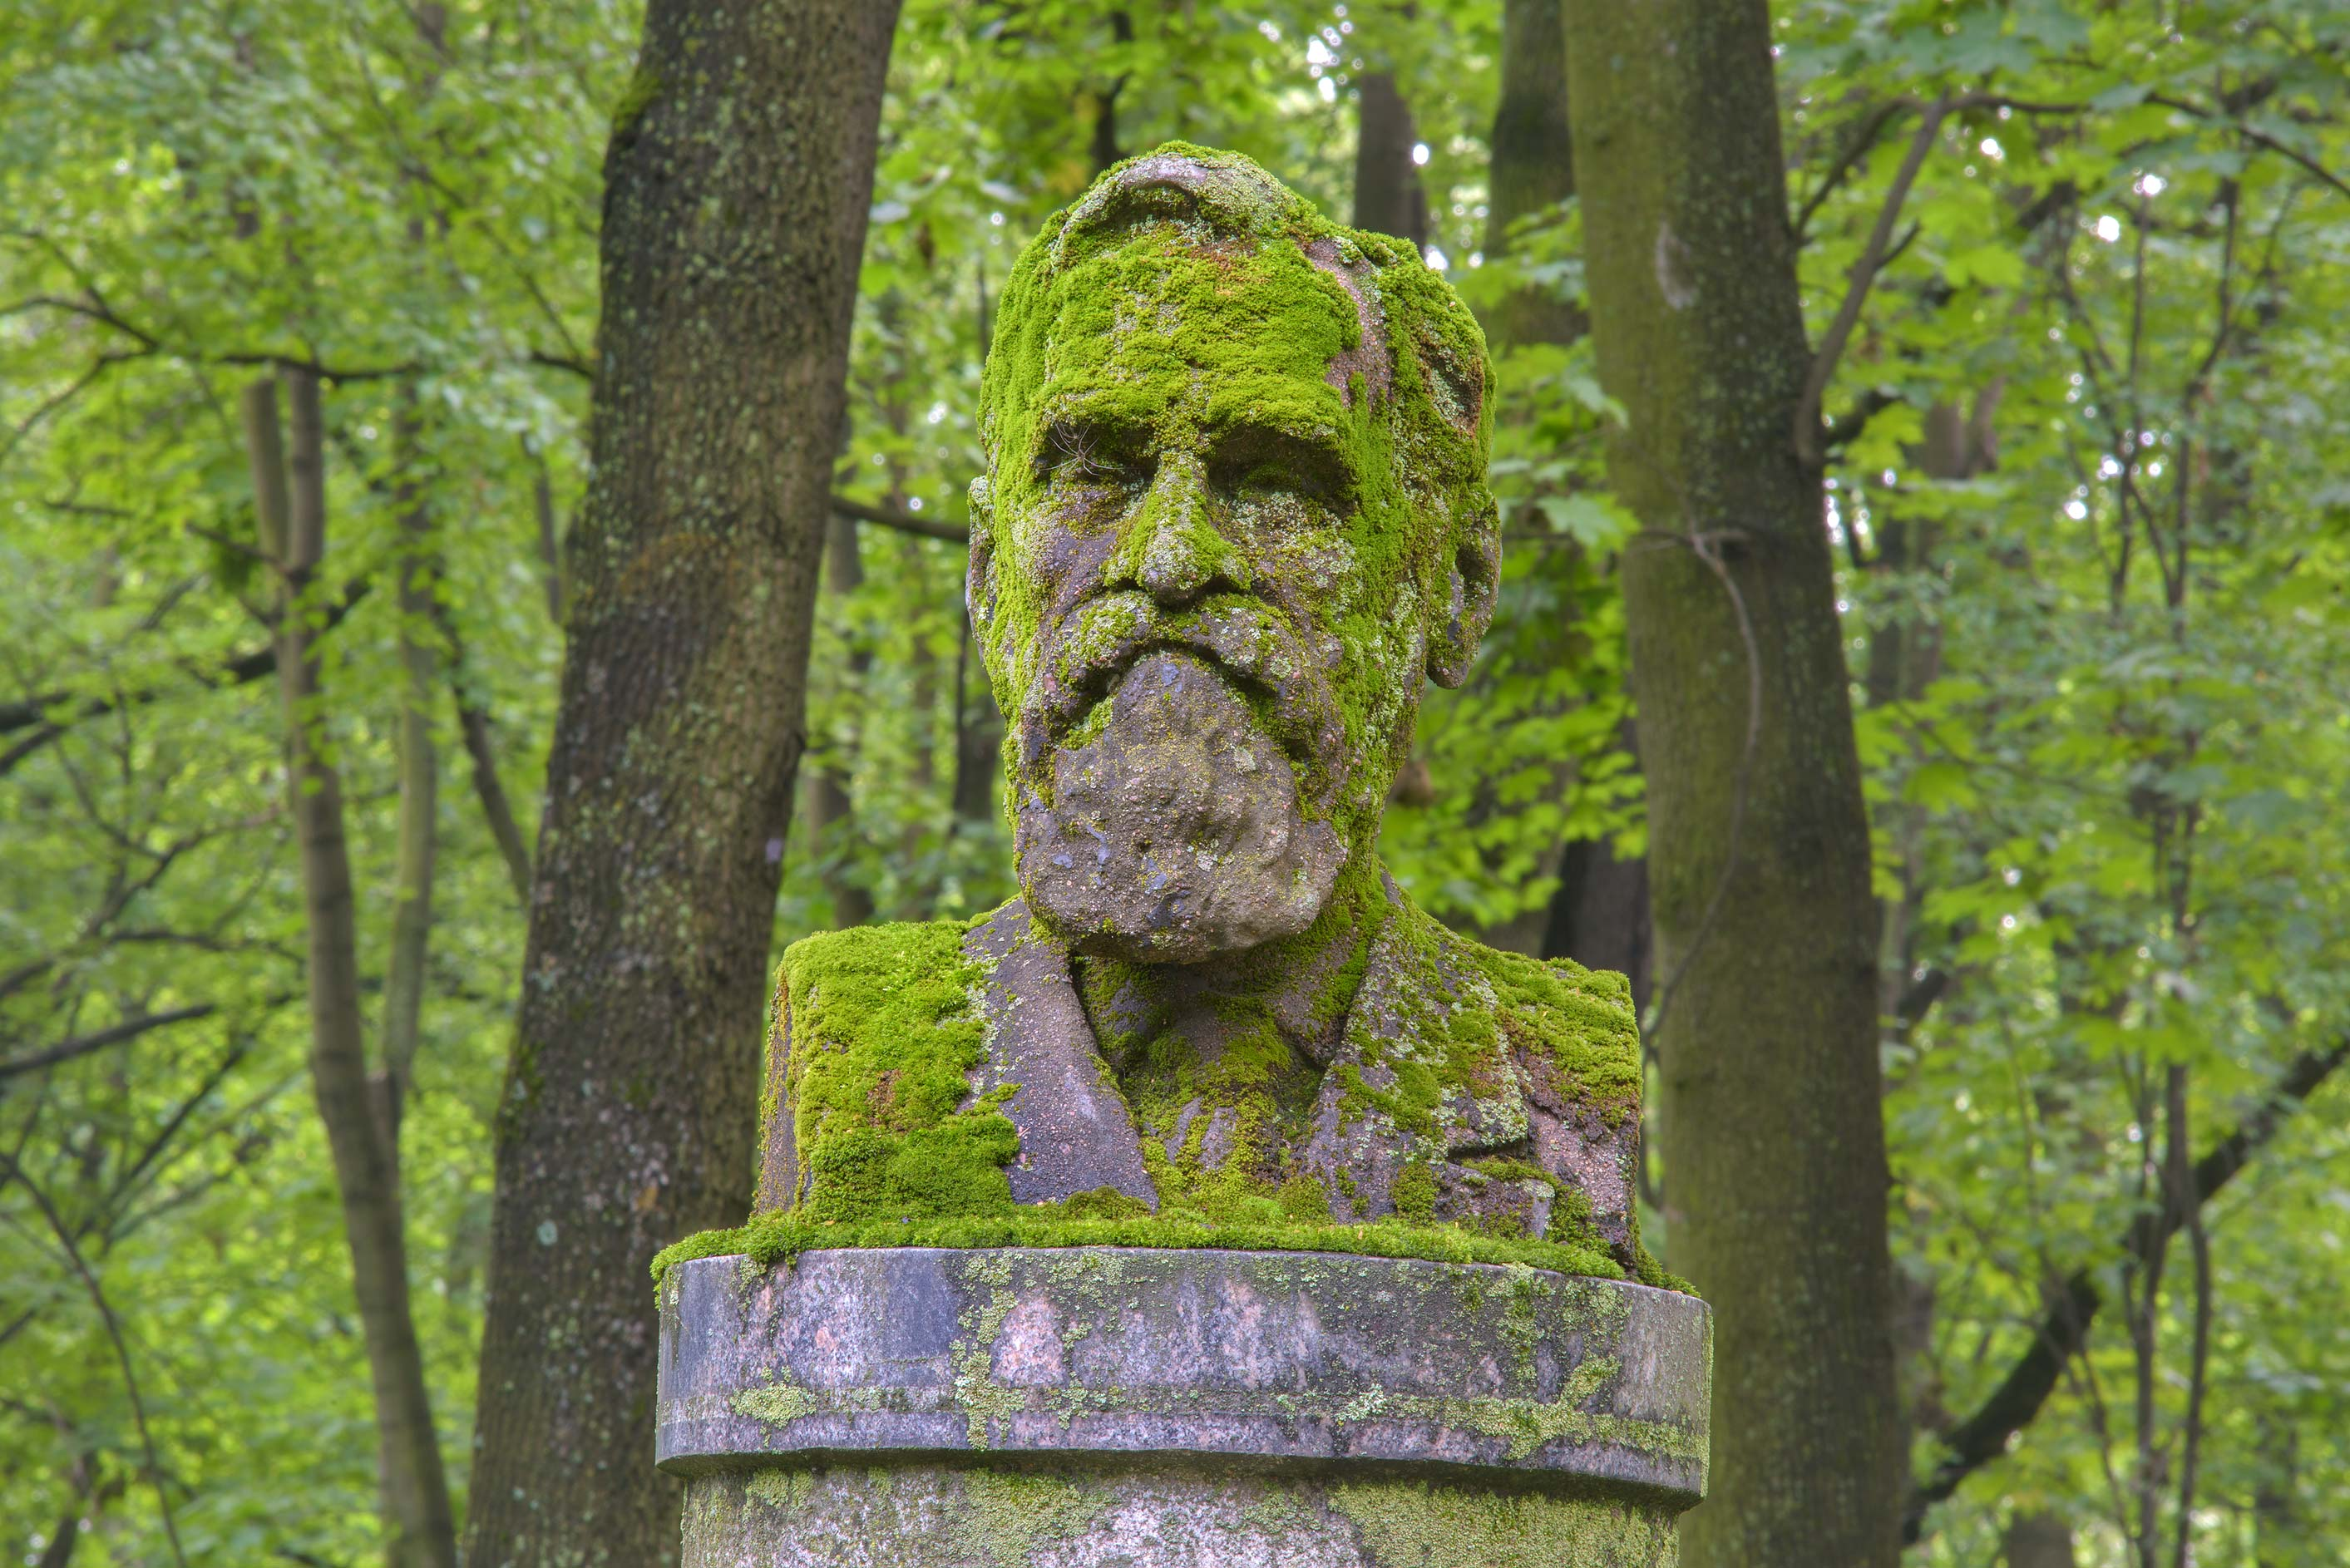 Mossy stone head of a Soviet physiologist E. A...Cemetery. St.Petersburg, Russia